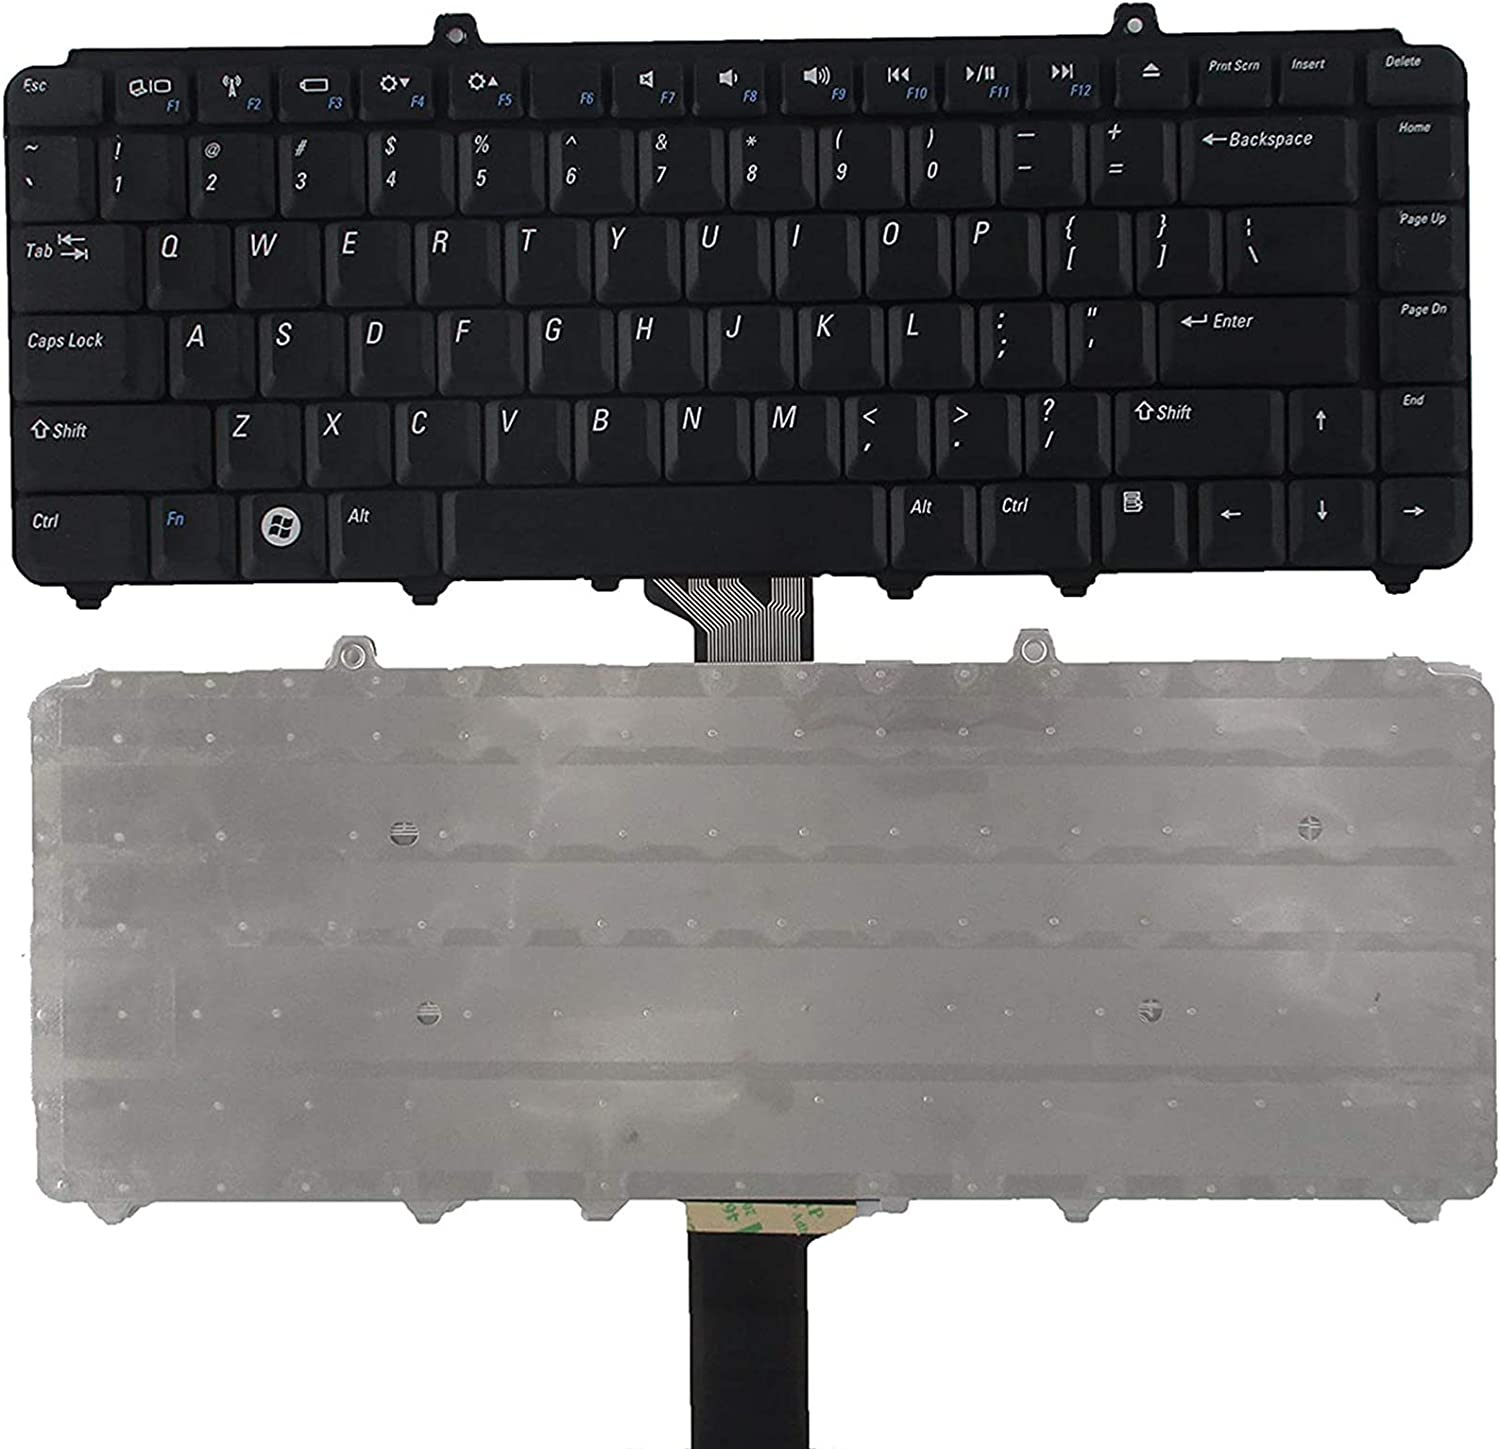 SUNMALL Keyboard Replacement Compatible with Dell Inspiron 1318 1520 1521 1525 1525se 1526 1526se 1545 1546, Vostro 1400 1410 1420 1500, XPS M1330 M1530 0NK750 9J.N9283.001 NSK-D9001 Laptop